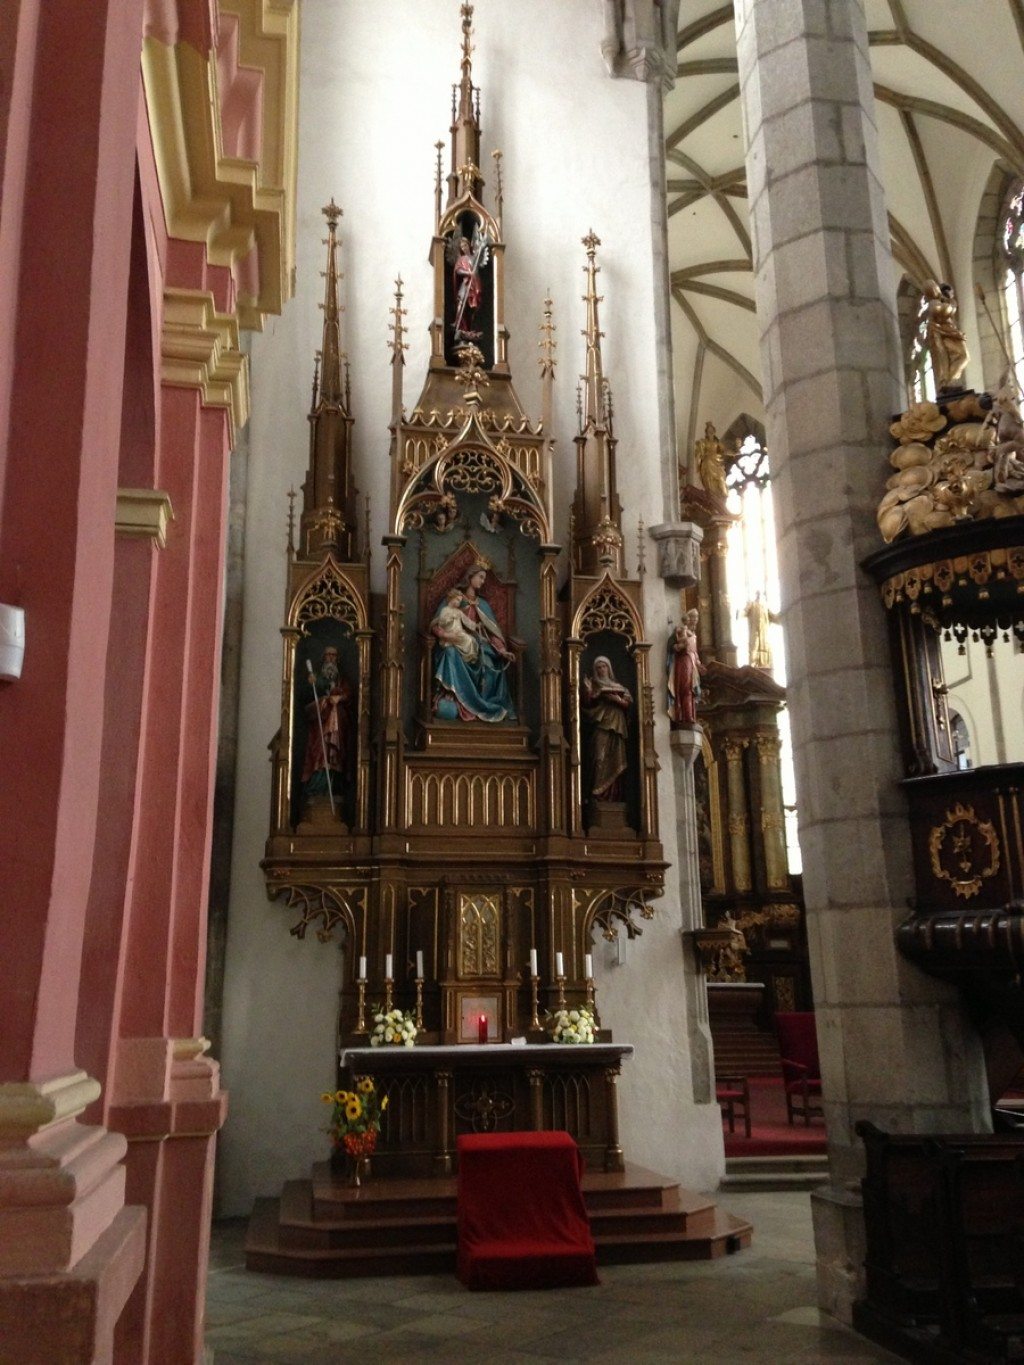 Inside the Saint Vitus Church